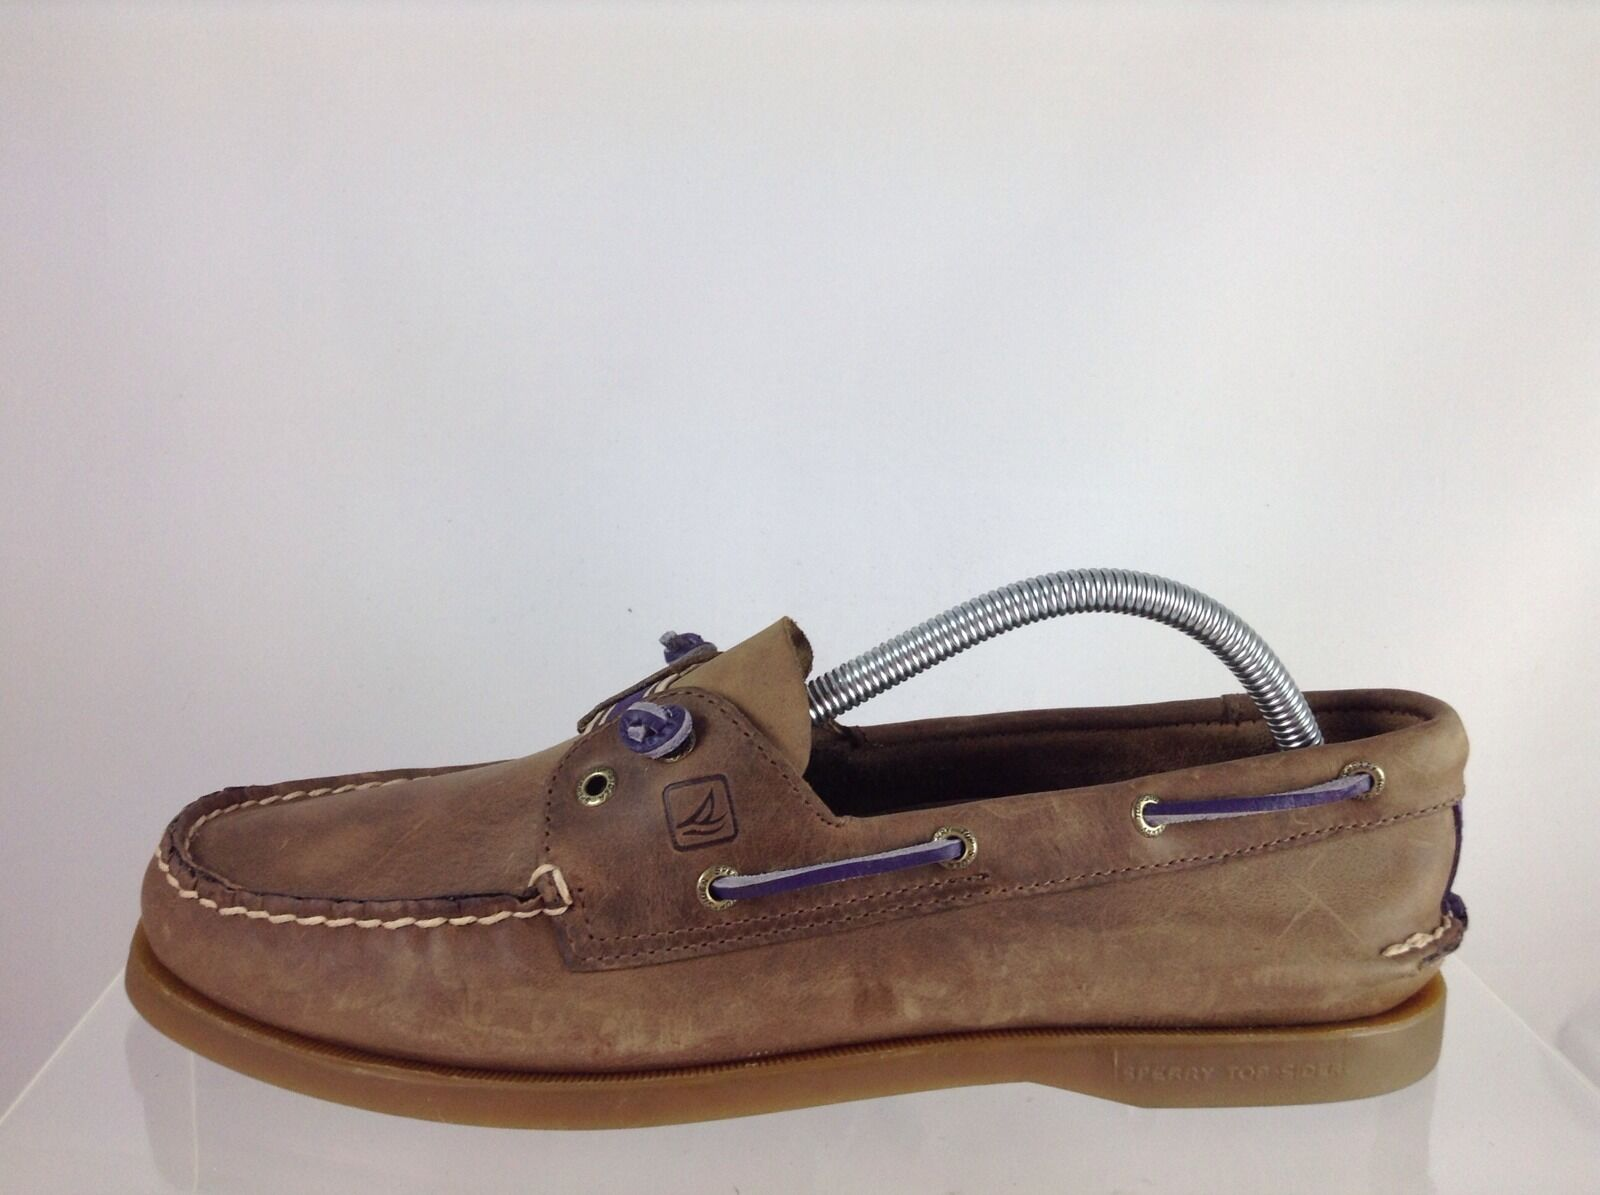 Sperry Womens Brown Leather shoes 11 M